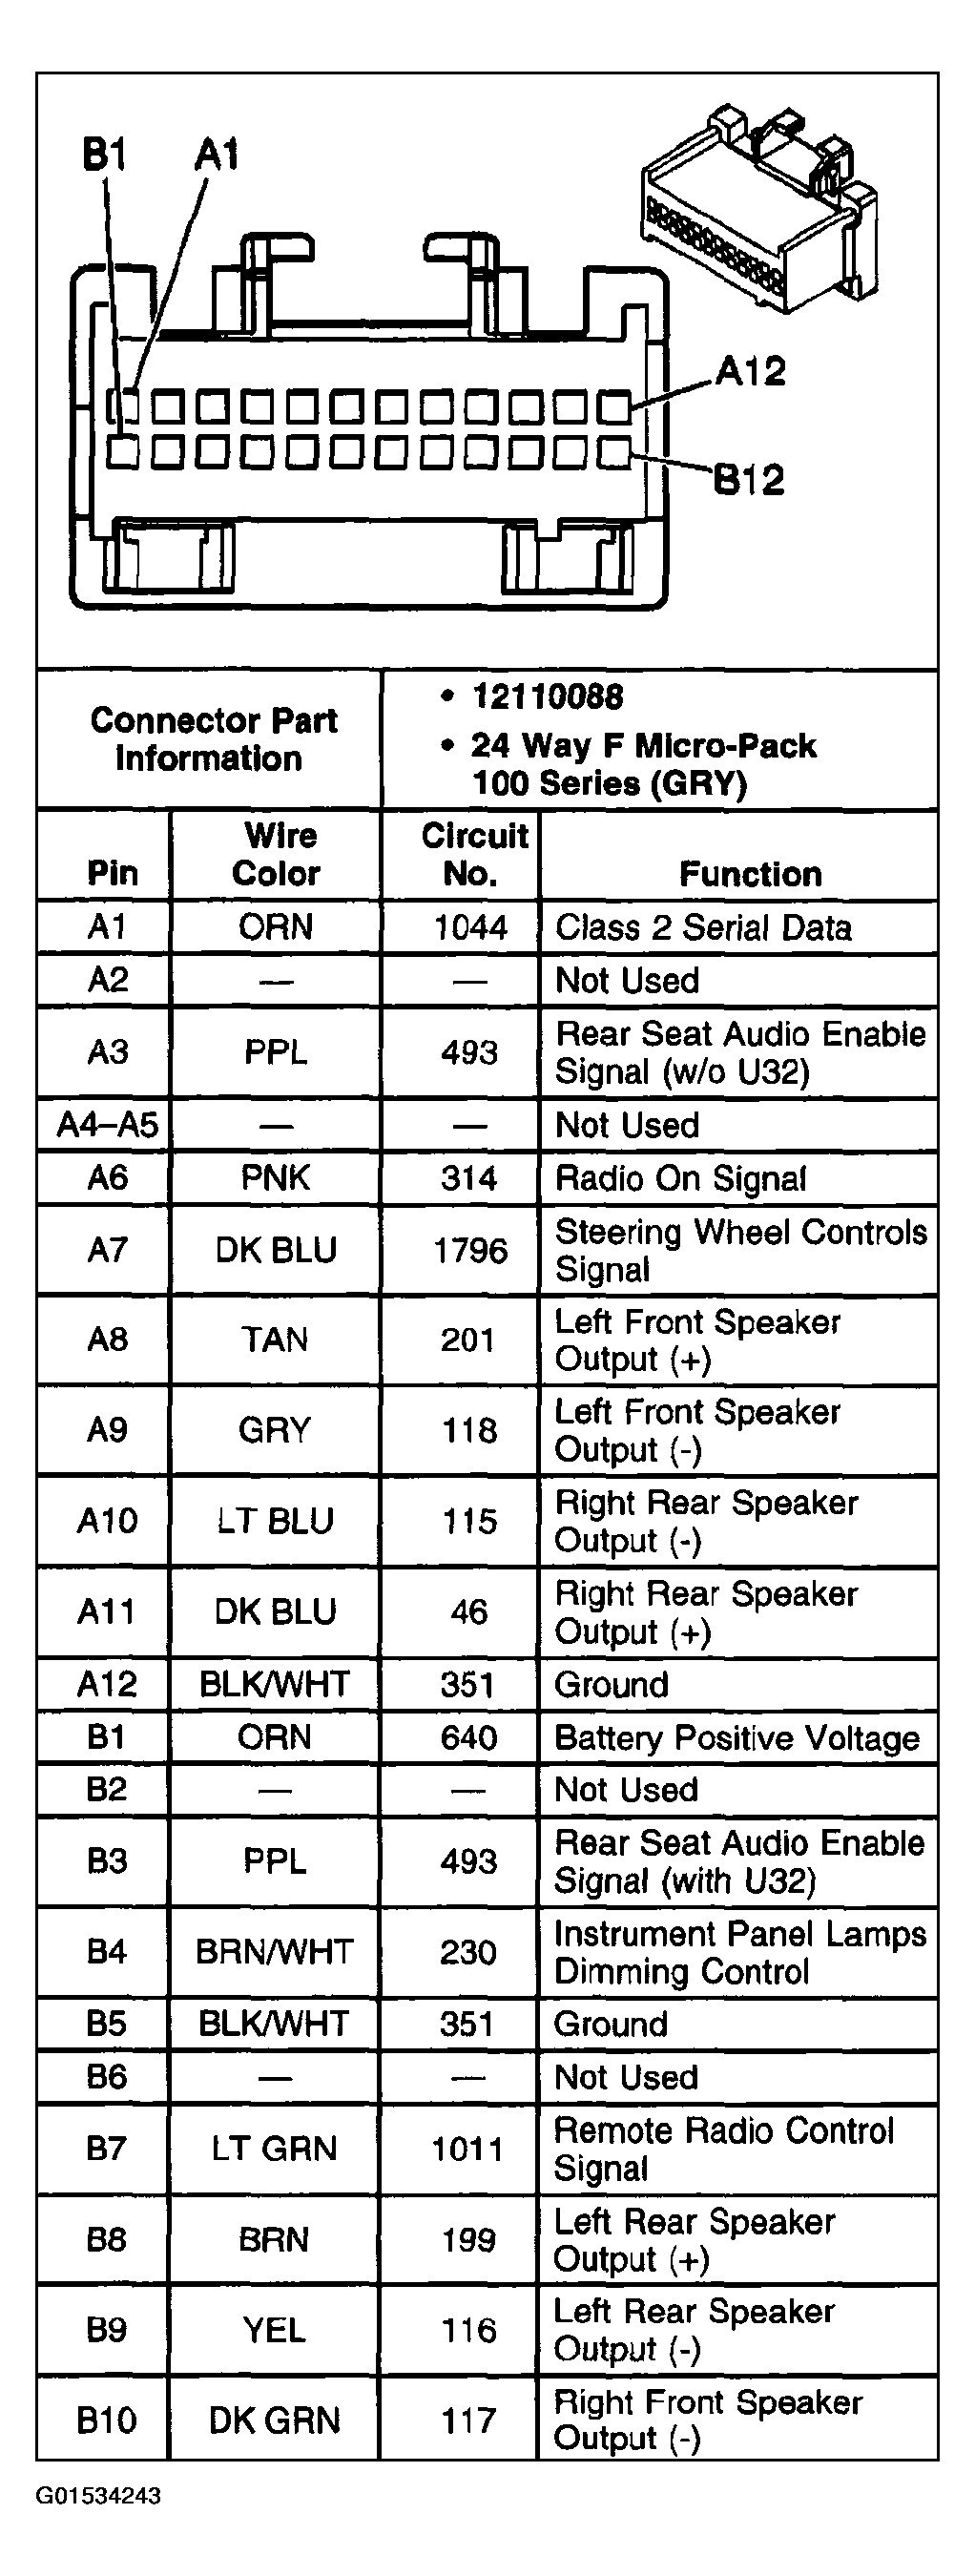 2000 chevy cavalier radio wiring diagram Collection-2000 Chevy Cavalier Radio Wiring Diagram Gallery 2001 Chevy Cavalier Radio Wiring Diagram Harness New 14-k